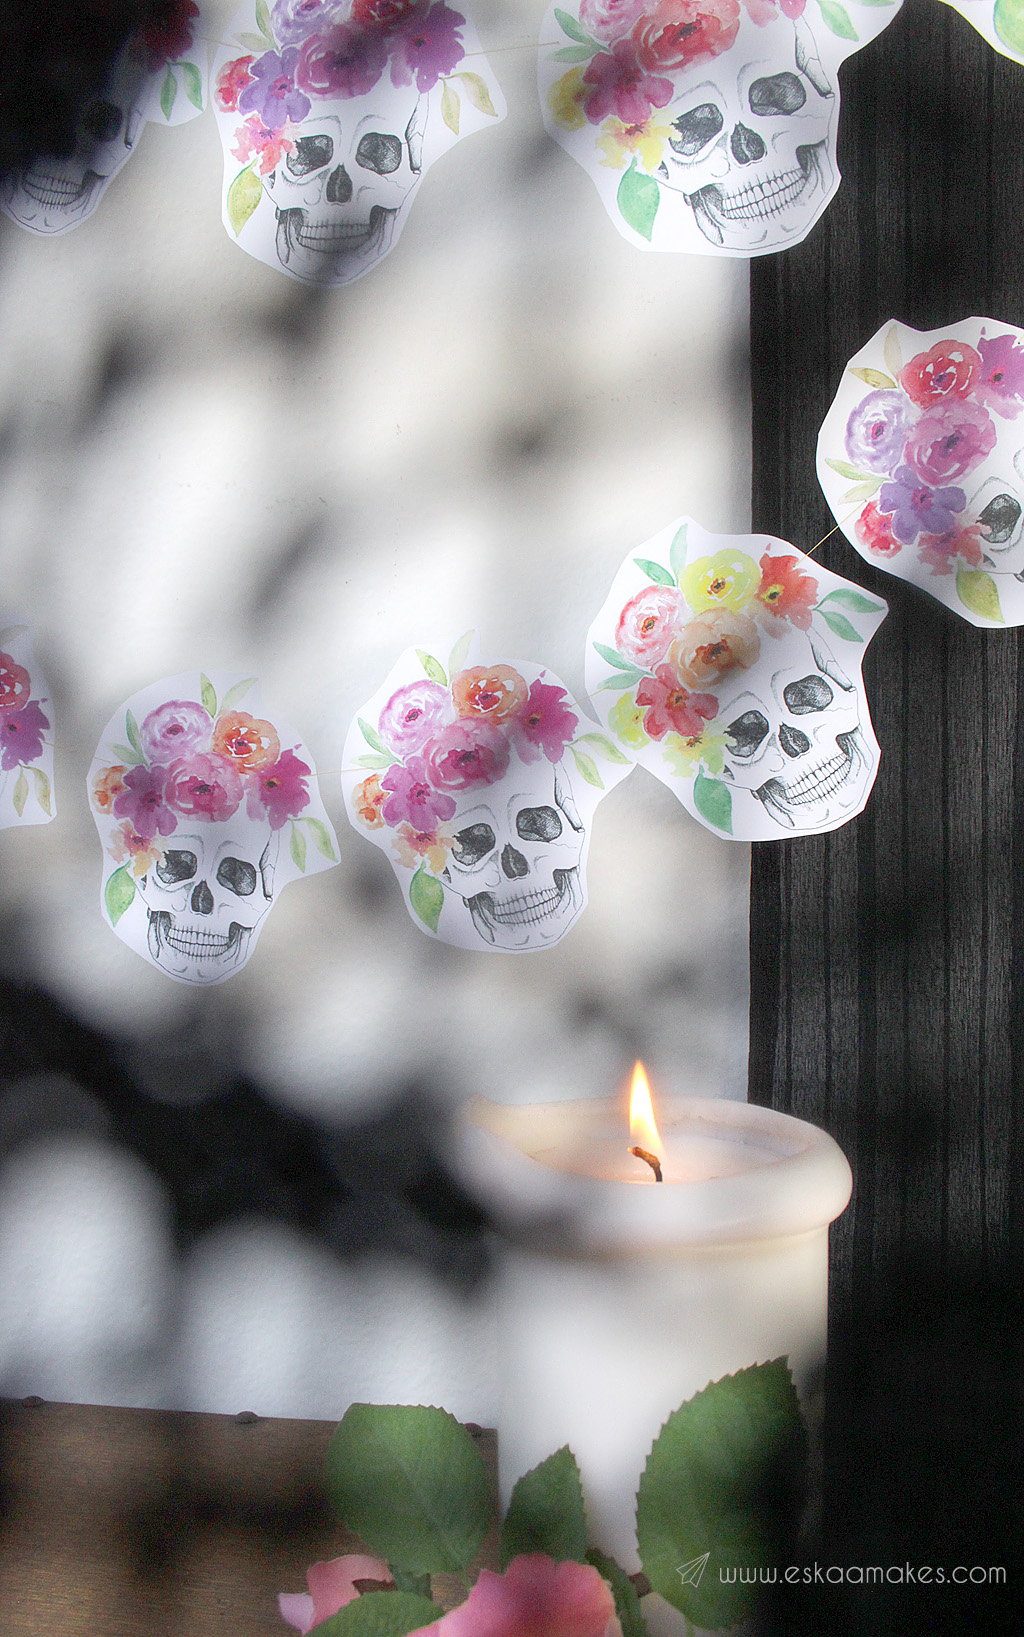 diy-flower-crown-skull-garland-3